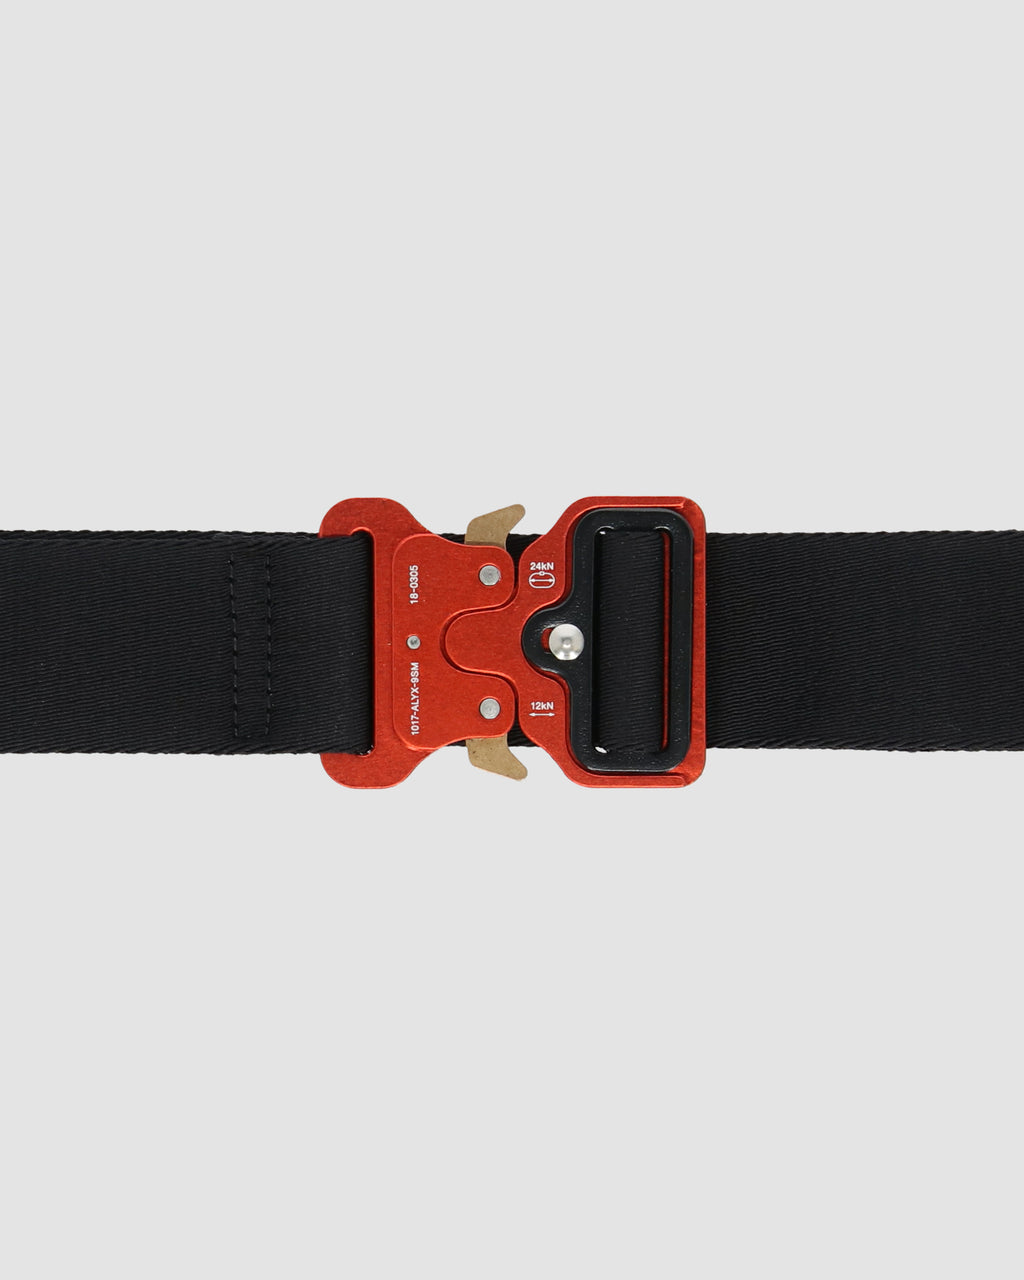 1017 ALYX 9SM | CLASSIC ROLLERCOASTER BELT W LOGO | Belt | Accessories, Belt, BELTS, Black, BLACK/RED, F19, Google Shopping, Man, Red, UNISEX, Woman